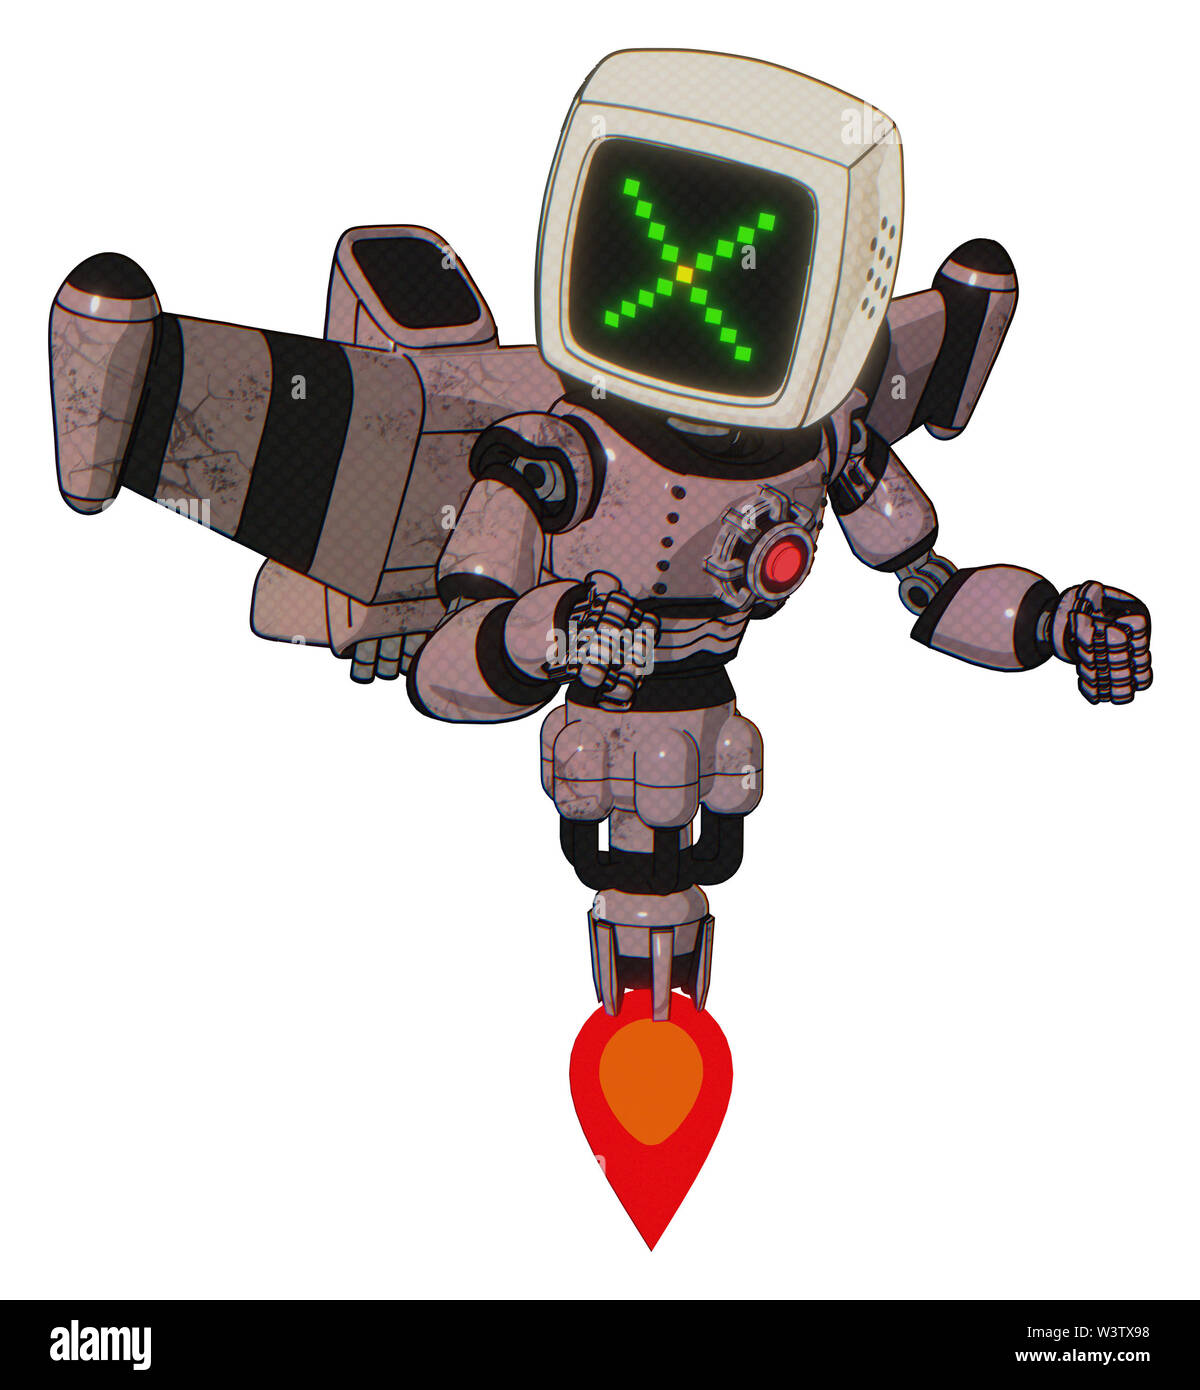 Mech containing elements: old computer monitor, pixel x, light chest exoshielding, red energy core, stellar jet wing rocket pack, jet propulsion. Mate - Stock Image